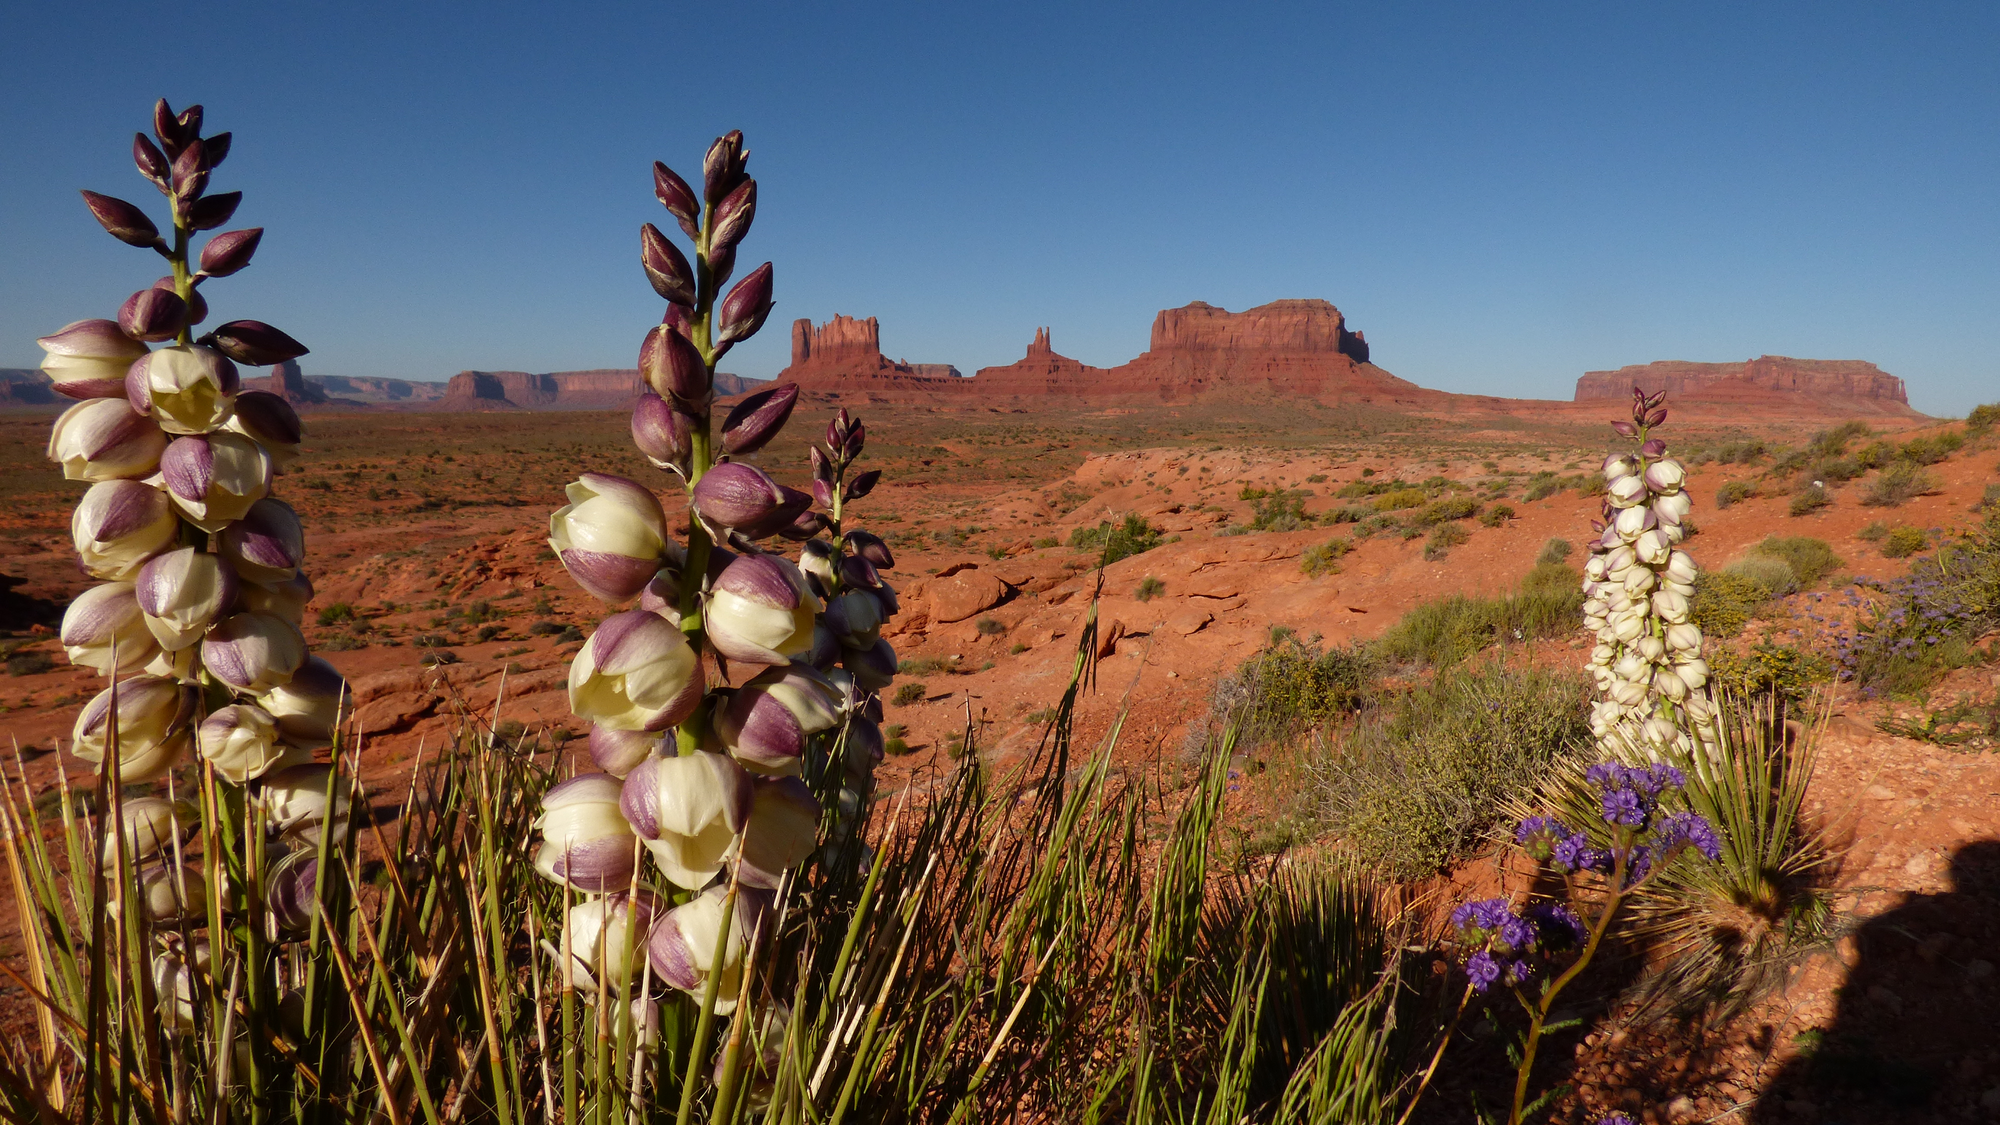 A cluster of blooming yucca plants in a red desert.